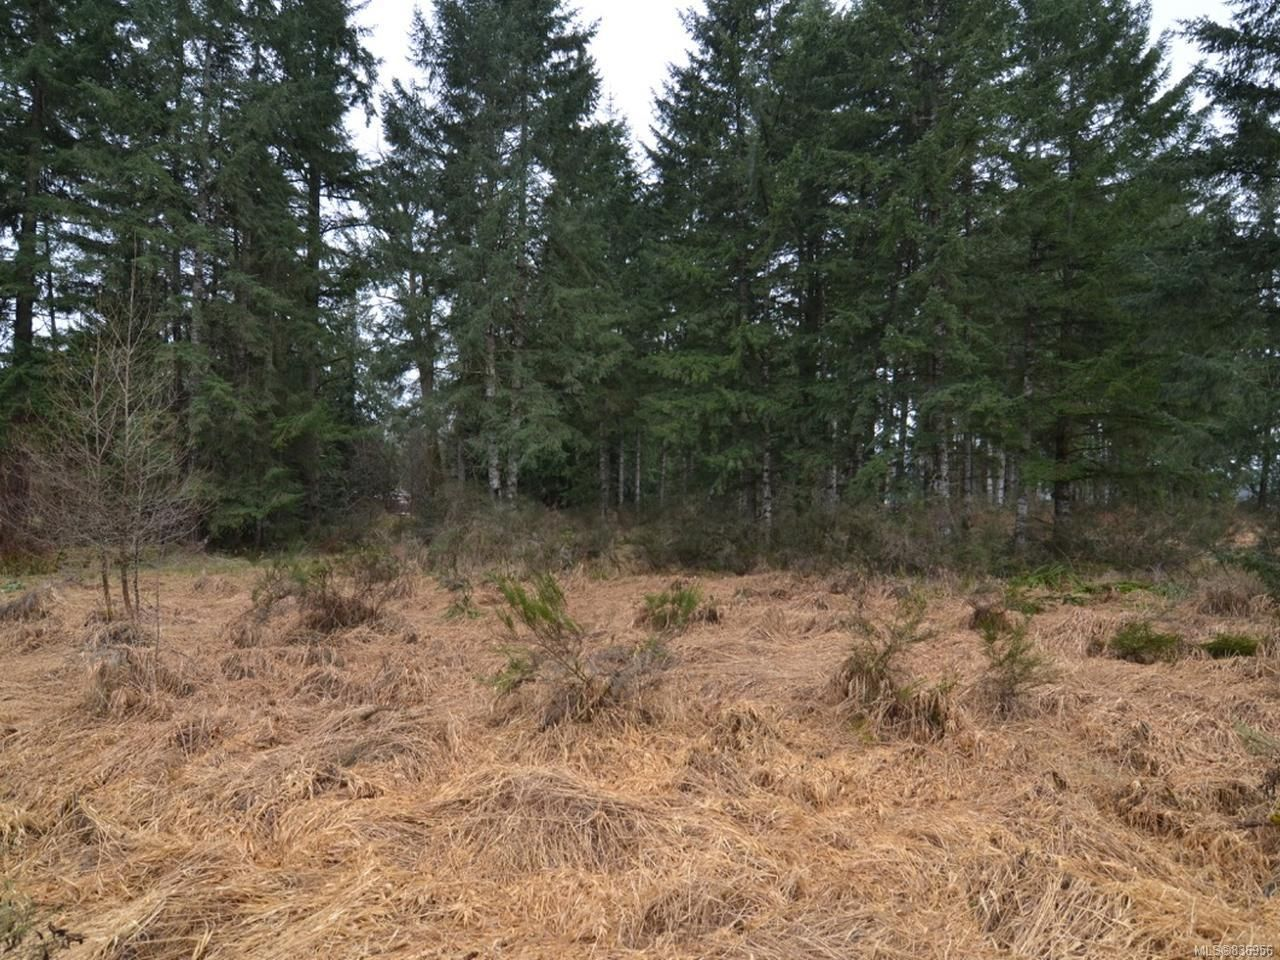 Photo 5: Photos: Lot A Ulverston Ave in CUMBERLAND: CV Cumberland Other for sale (Comox Valley)  : MLS®# 836956